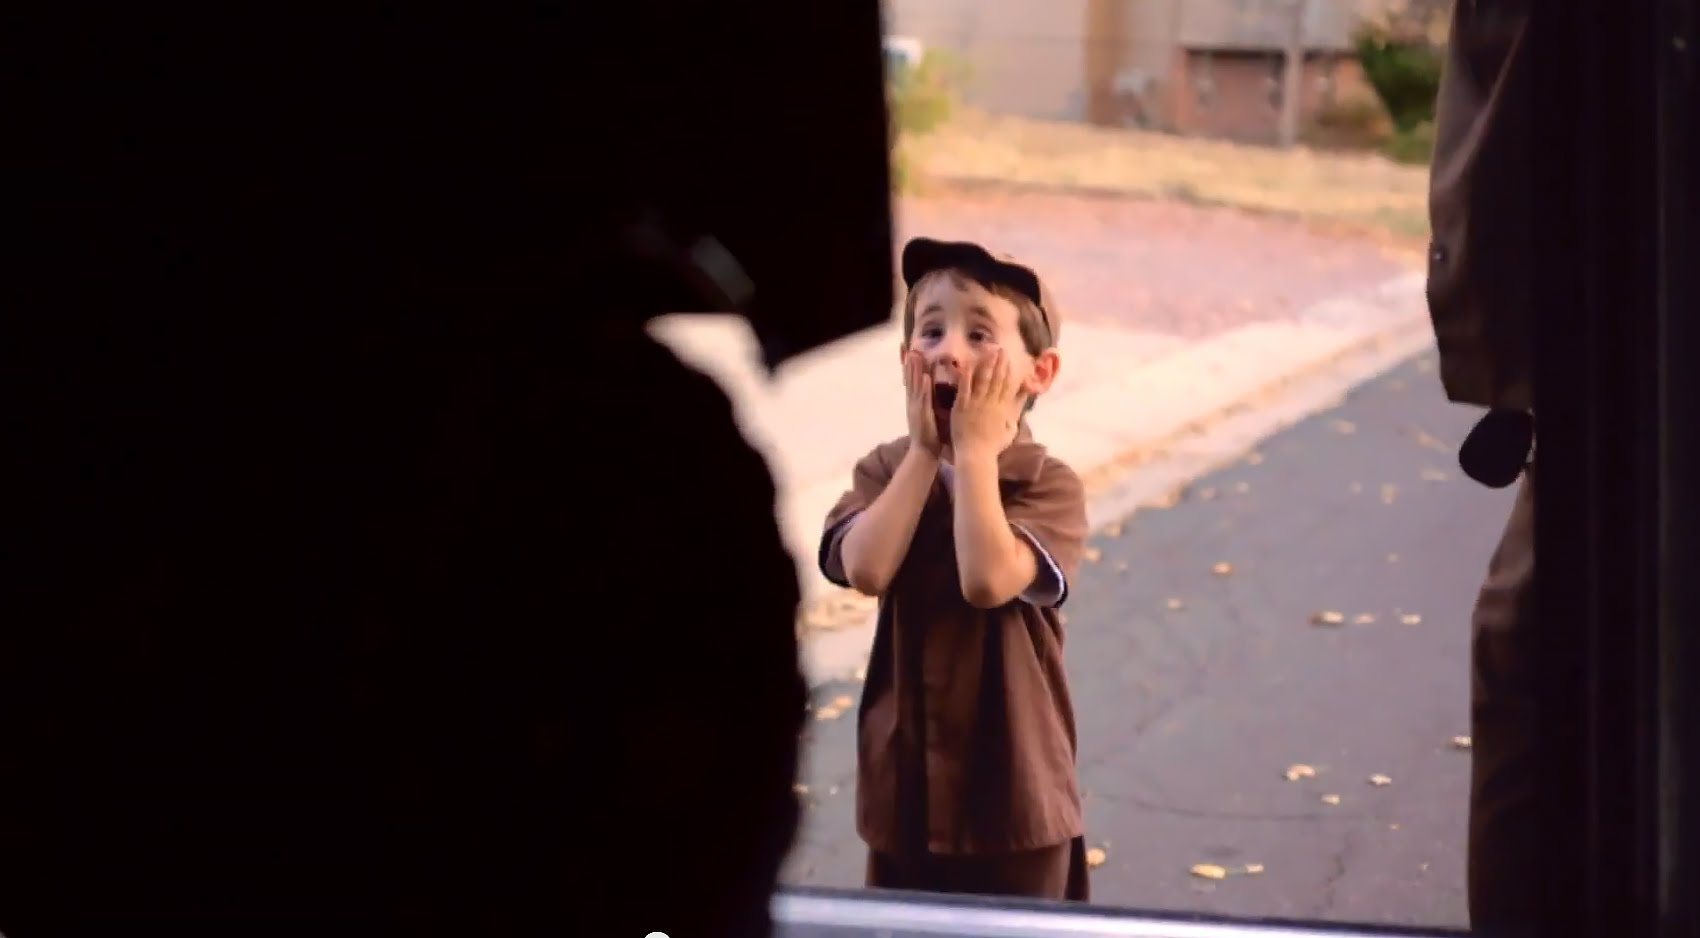 4-Year-Old UPS Driver